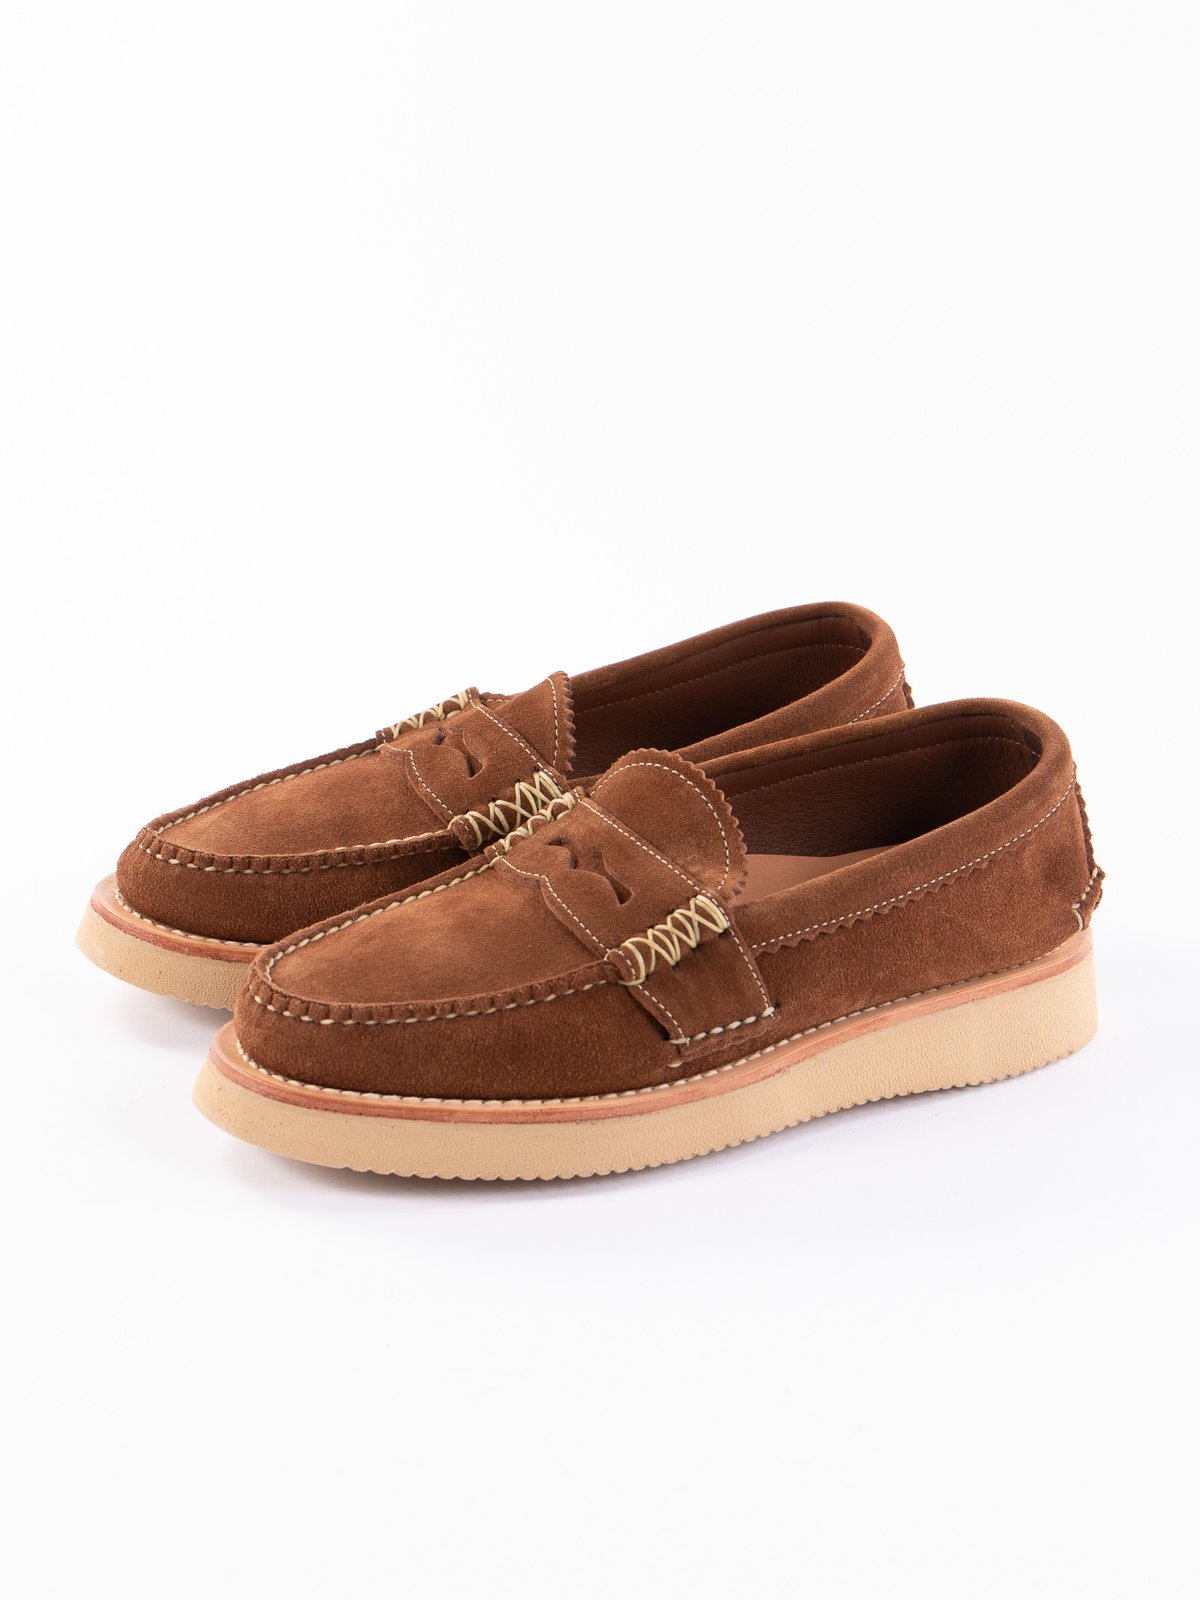 FO Snuff Loafer w/2021 Sole Exclusive - Image 2